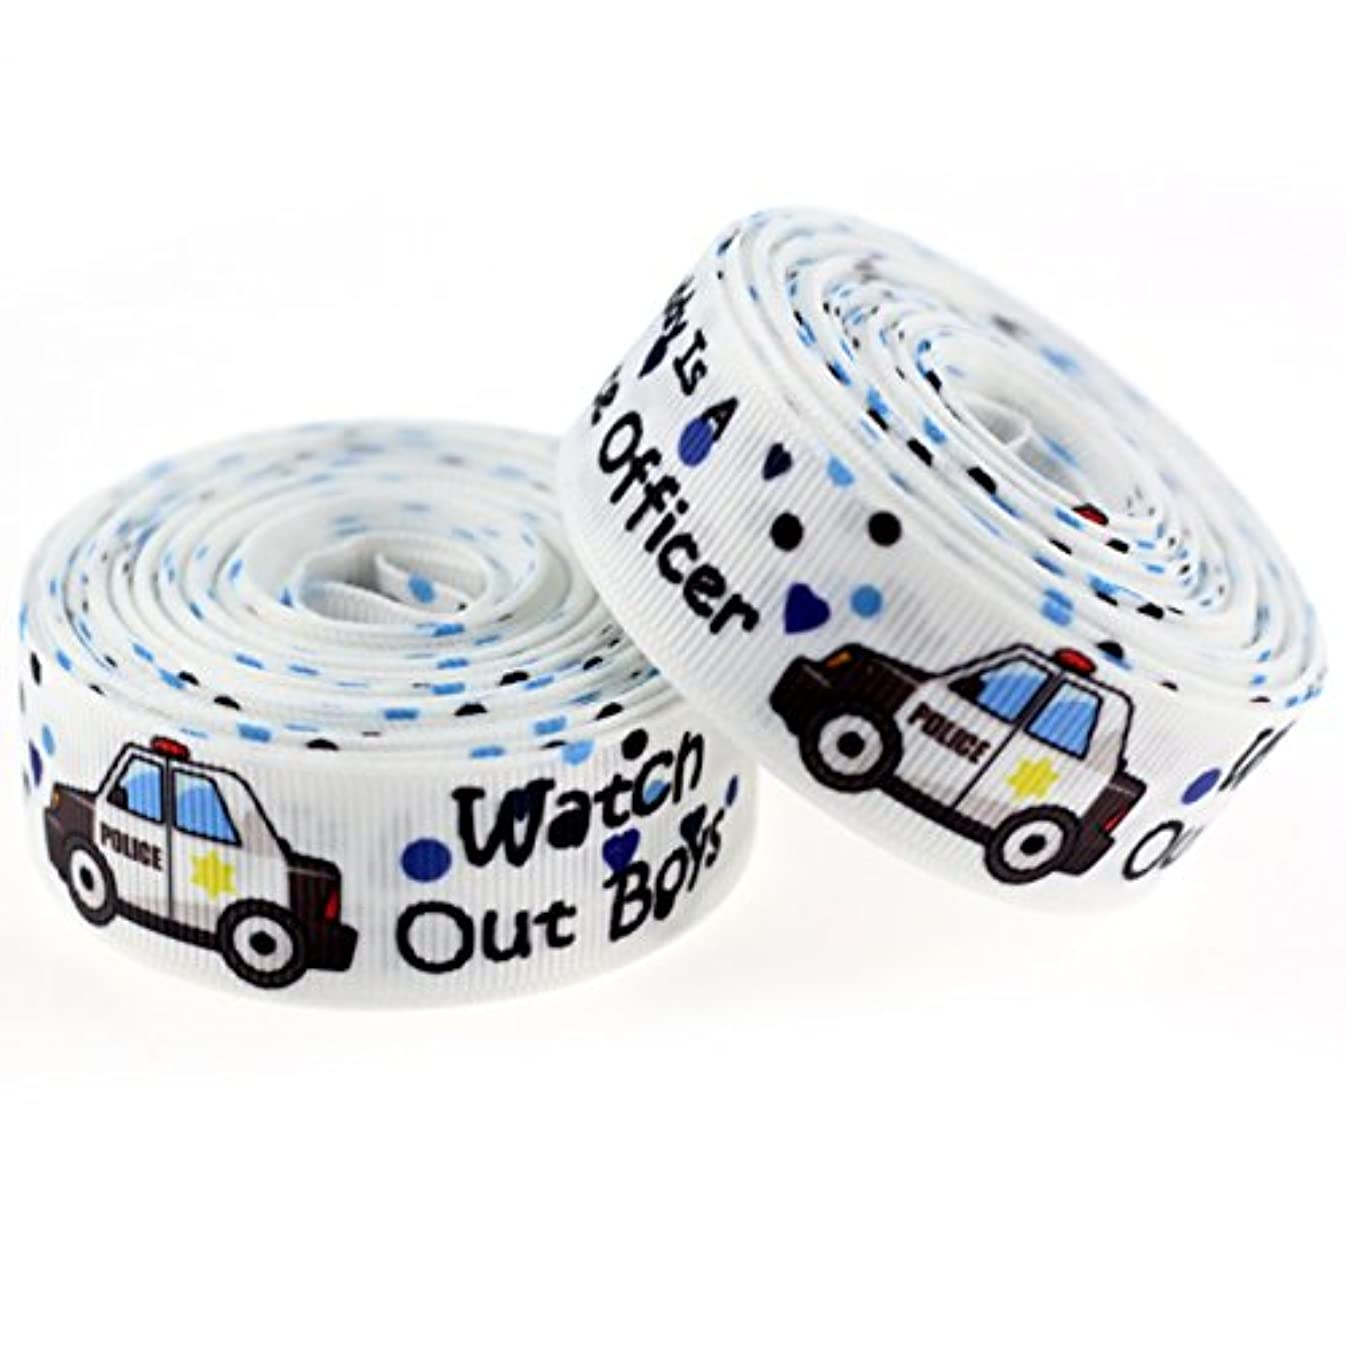 Midi Ribbon Value Pack Happy Father's Day Watch Out Boys Polica Car Single Face Printed Grosgrain Ribbon 7/8